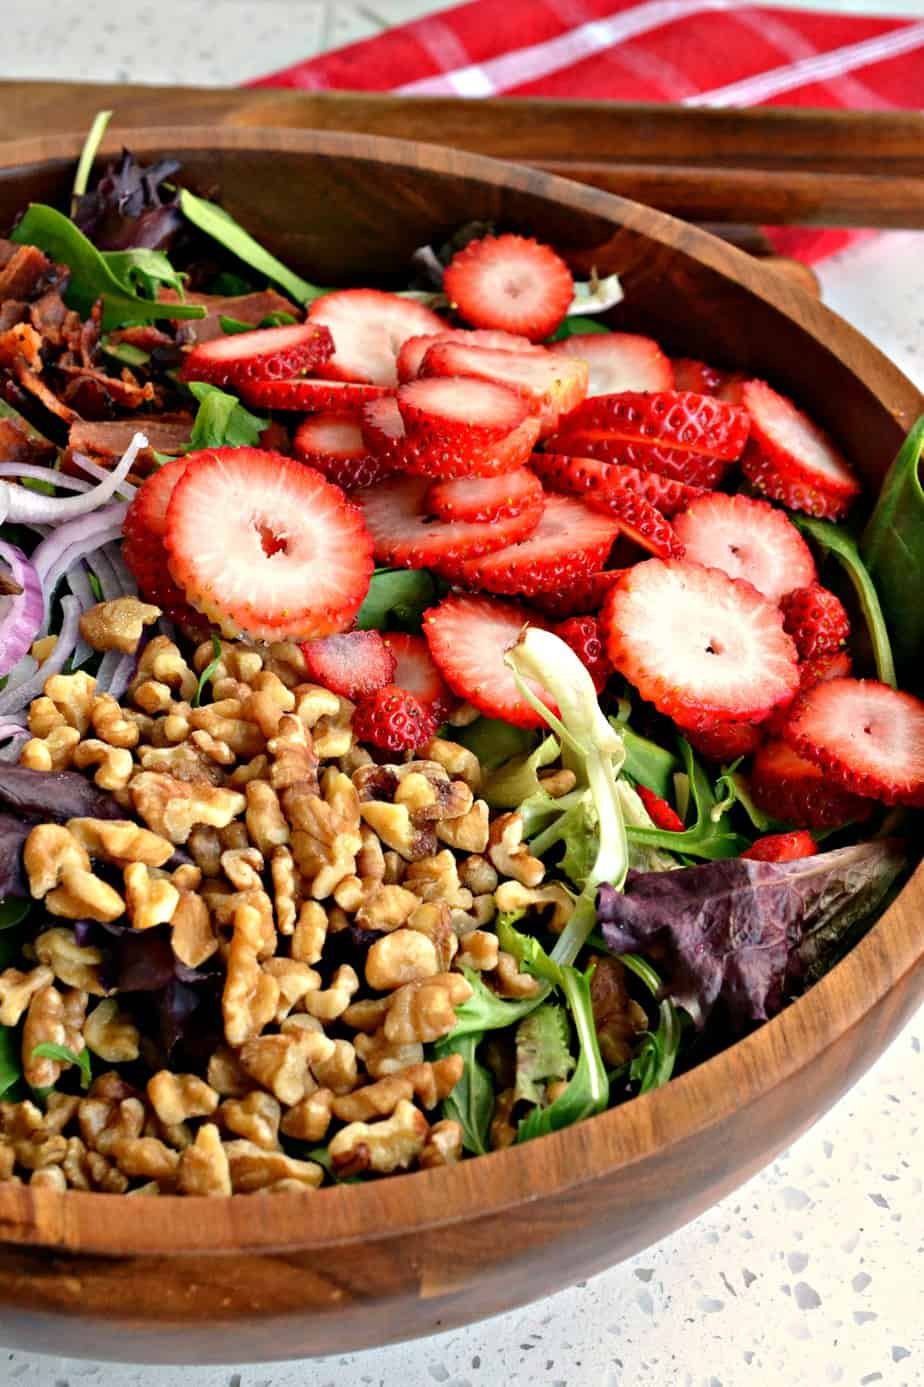 This Strawberry Spinach Salad with bacon and walnuts is always a hit for spring and summer gatherings.